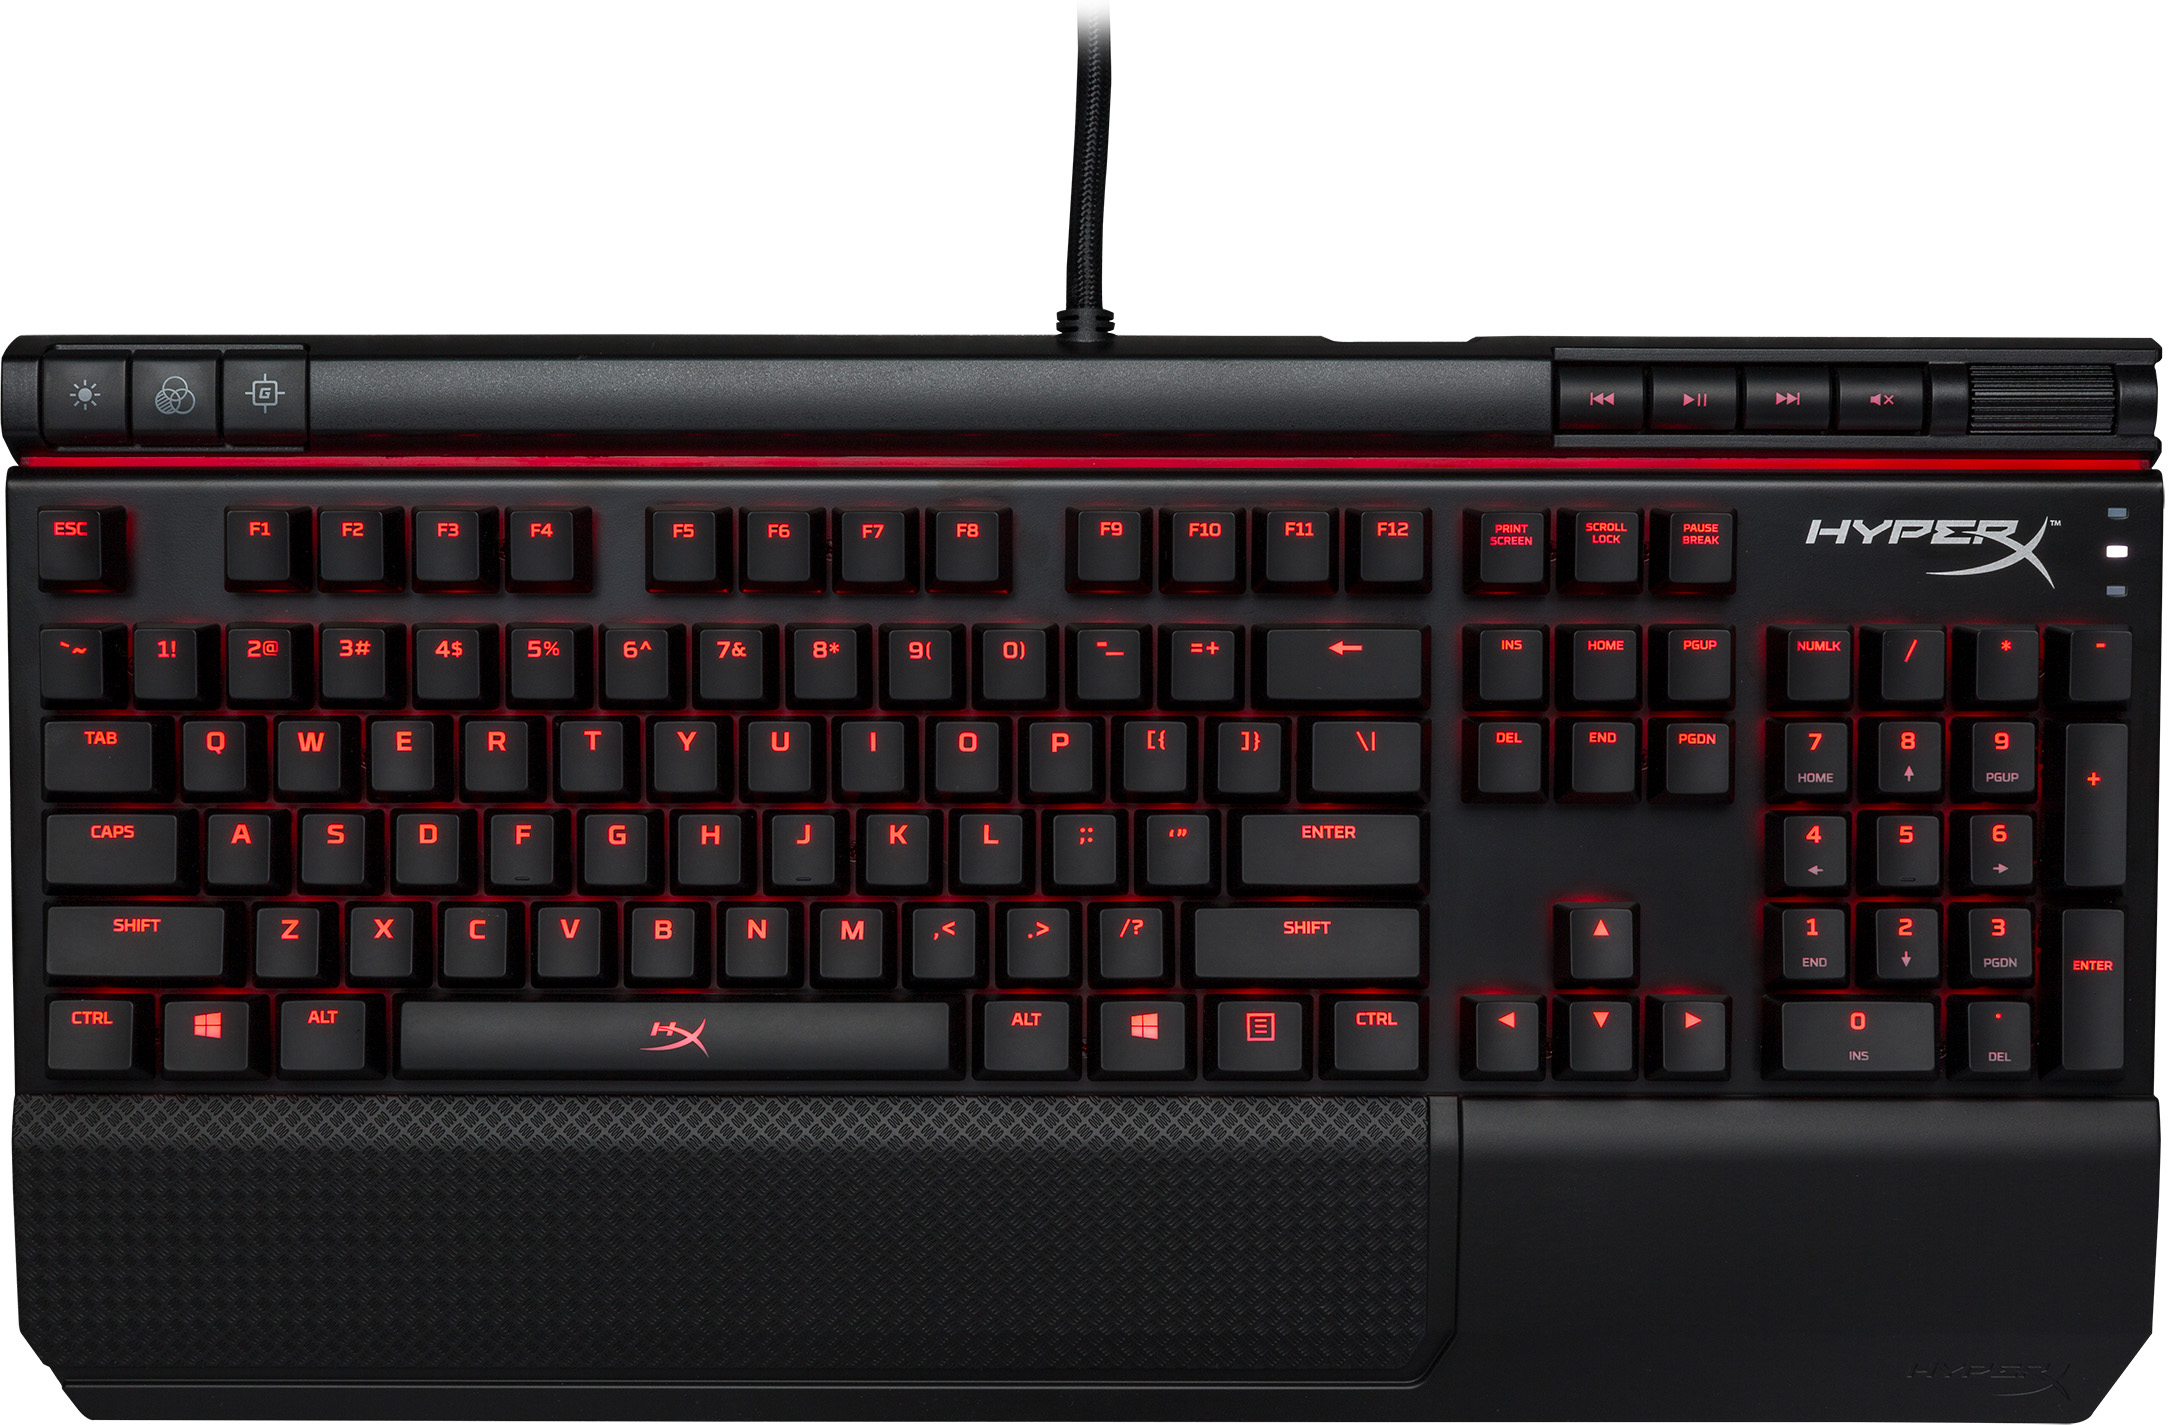 Kingston HyperX Alloy Elite Mechanical Gaming Keyboard - Cherry MX Red, Red LED